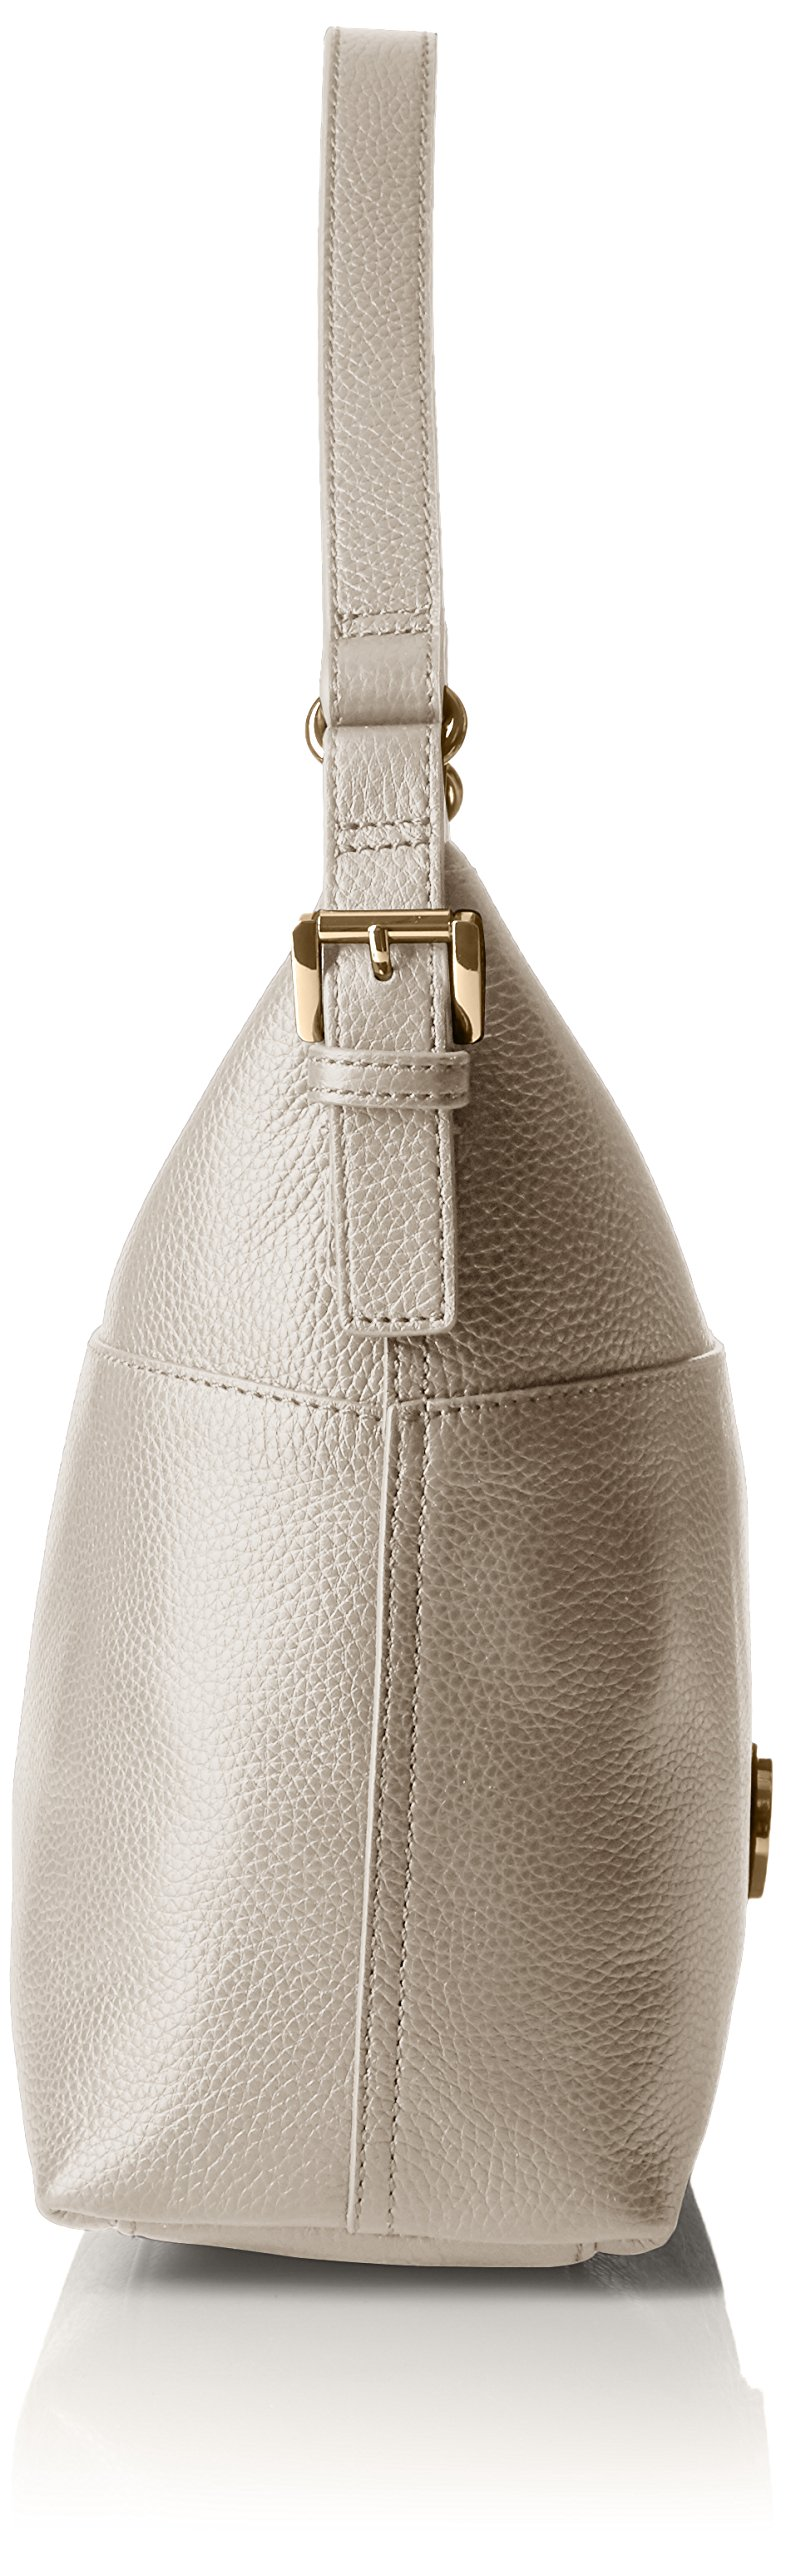 Tommy Hilfiger Purse for Women TH Summer of Love Hobo, Oatmeal by Tommy Hilfiger (Image #3)